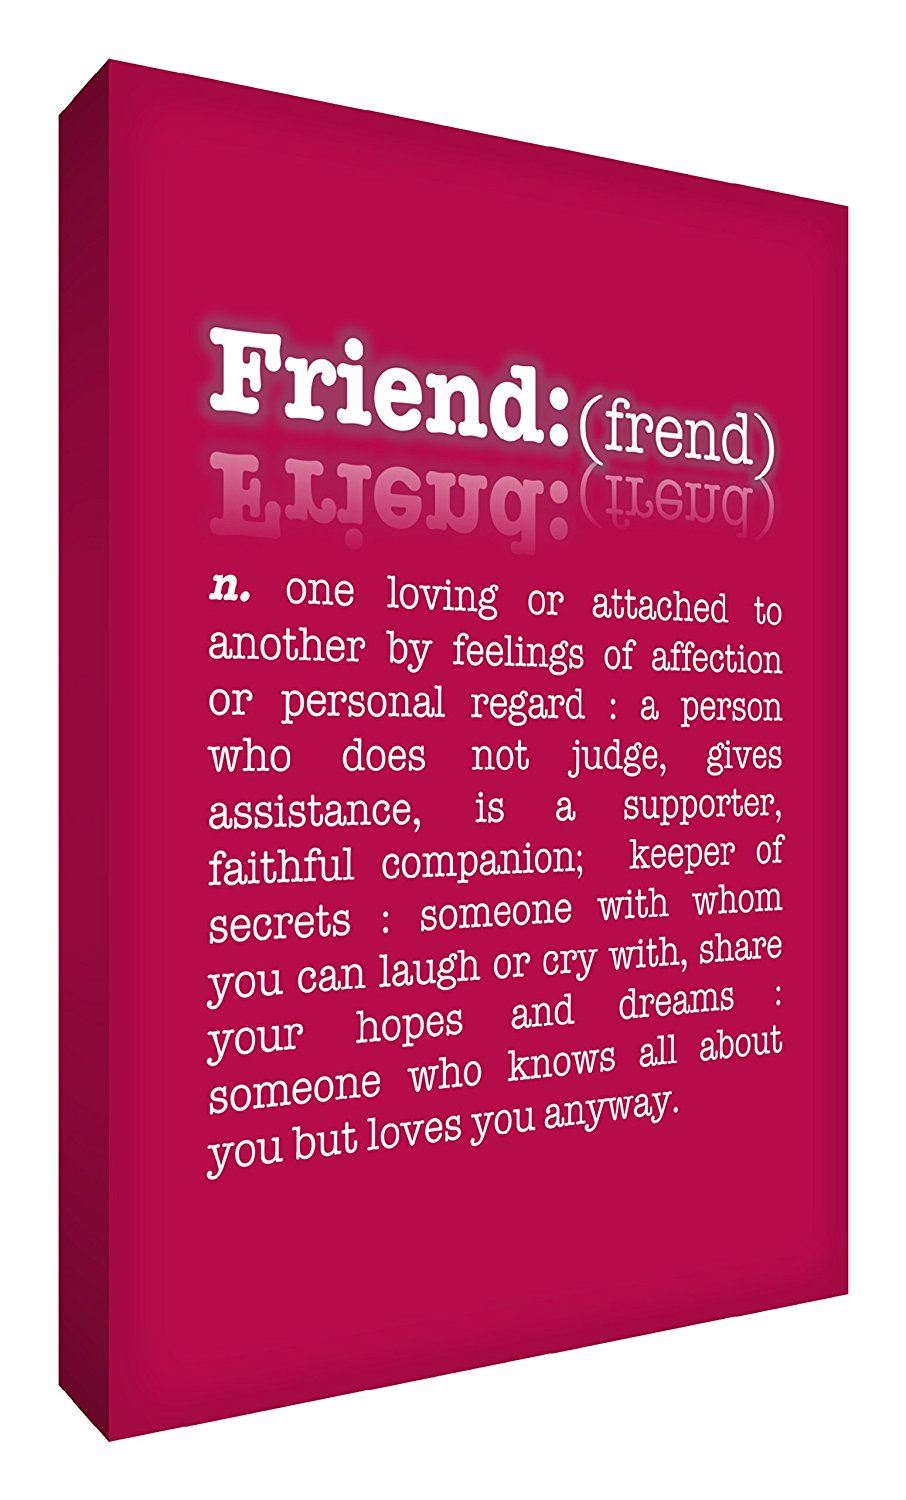 Feel Good Art 12 x 8-inch A4 Small Modern Typographic Dictionary Description of Friend Thick Box Canvas, Raspberry Red